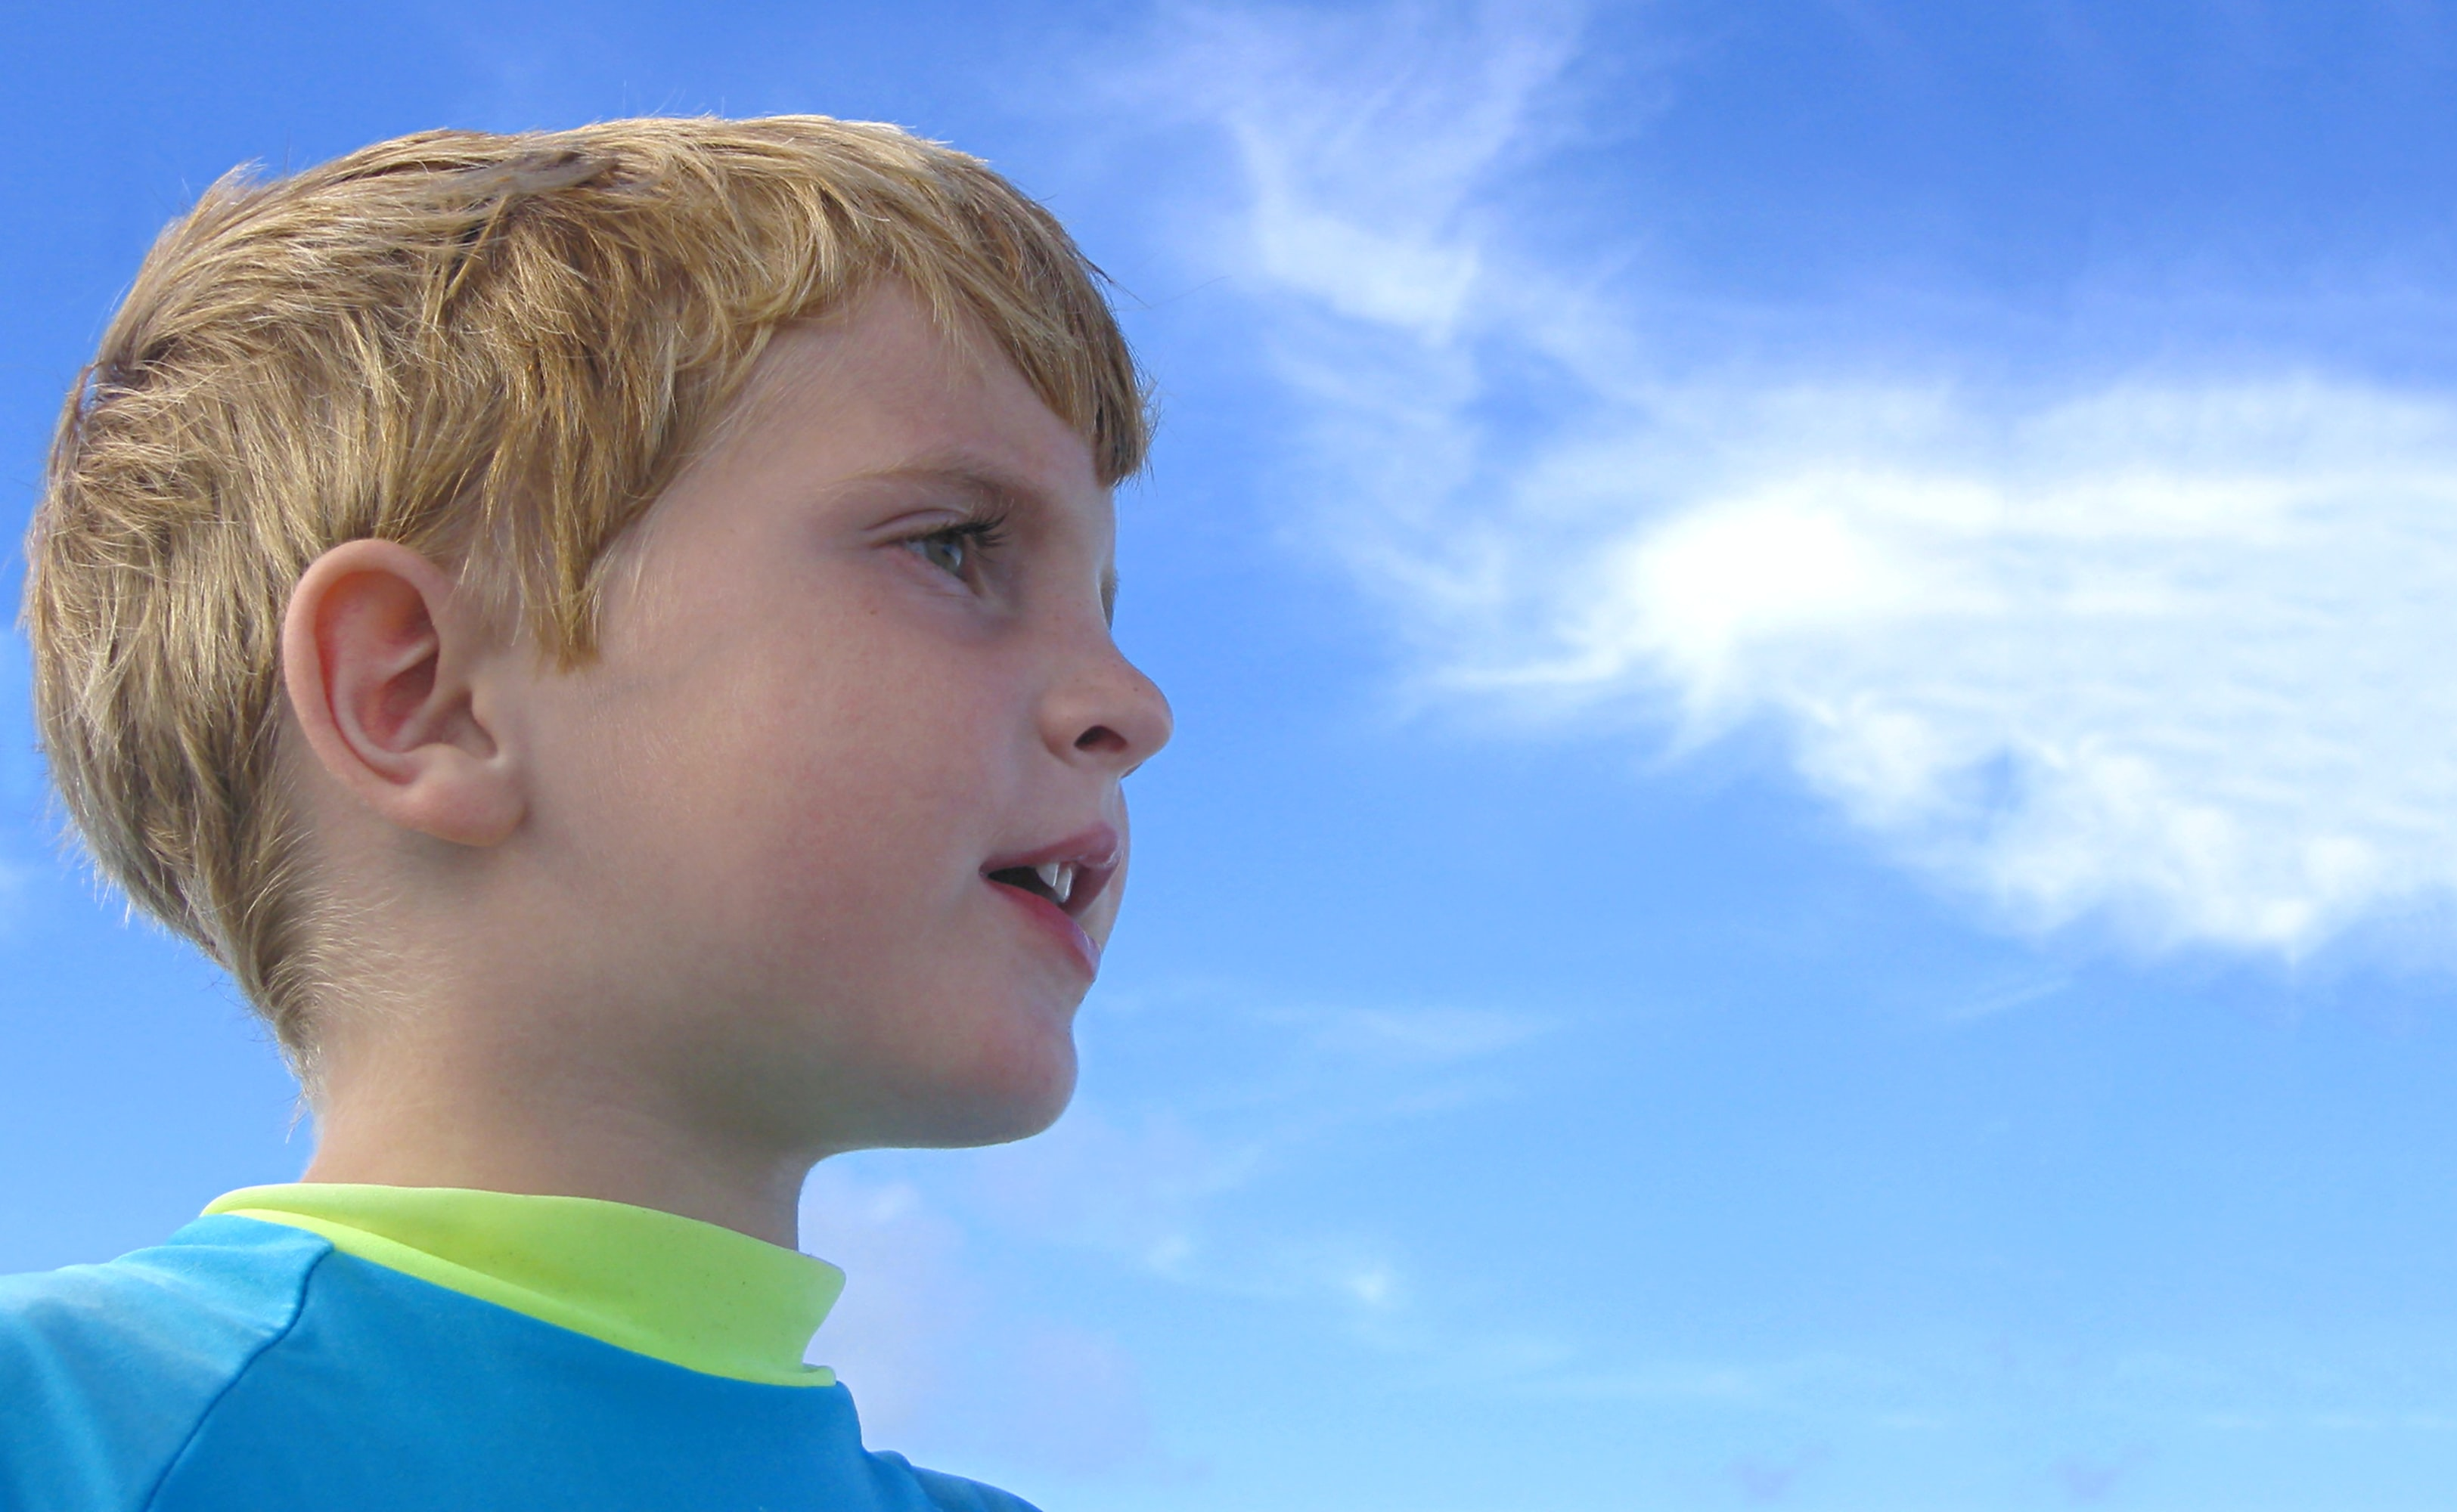 blonde haired boy wearing blue shirt under white and blue cloudy skies